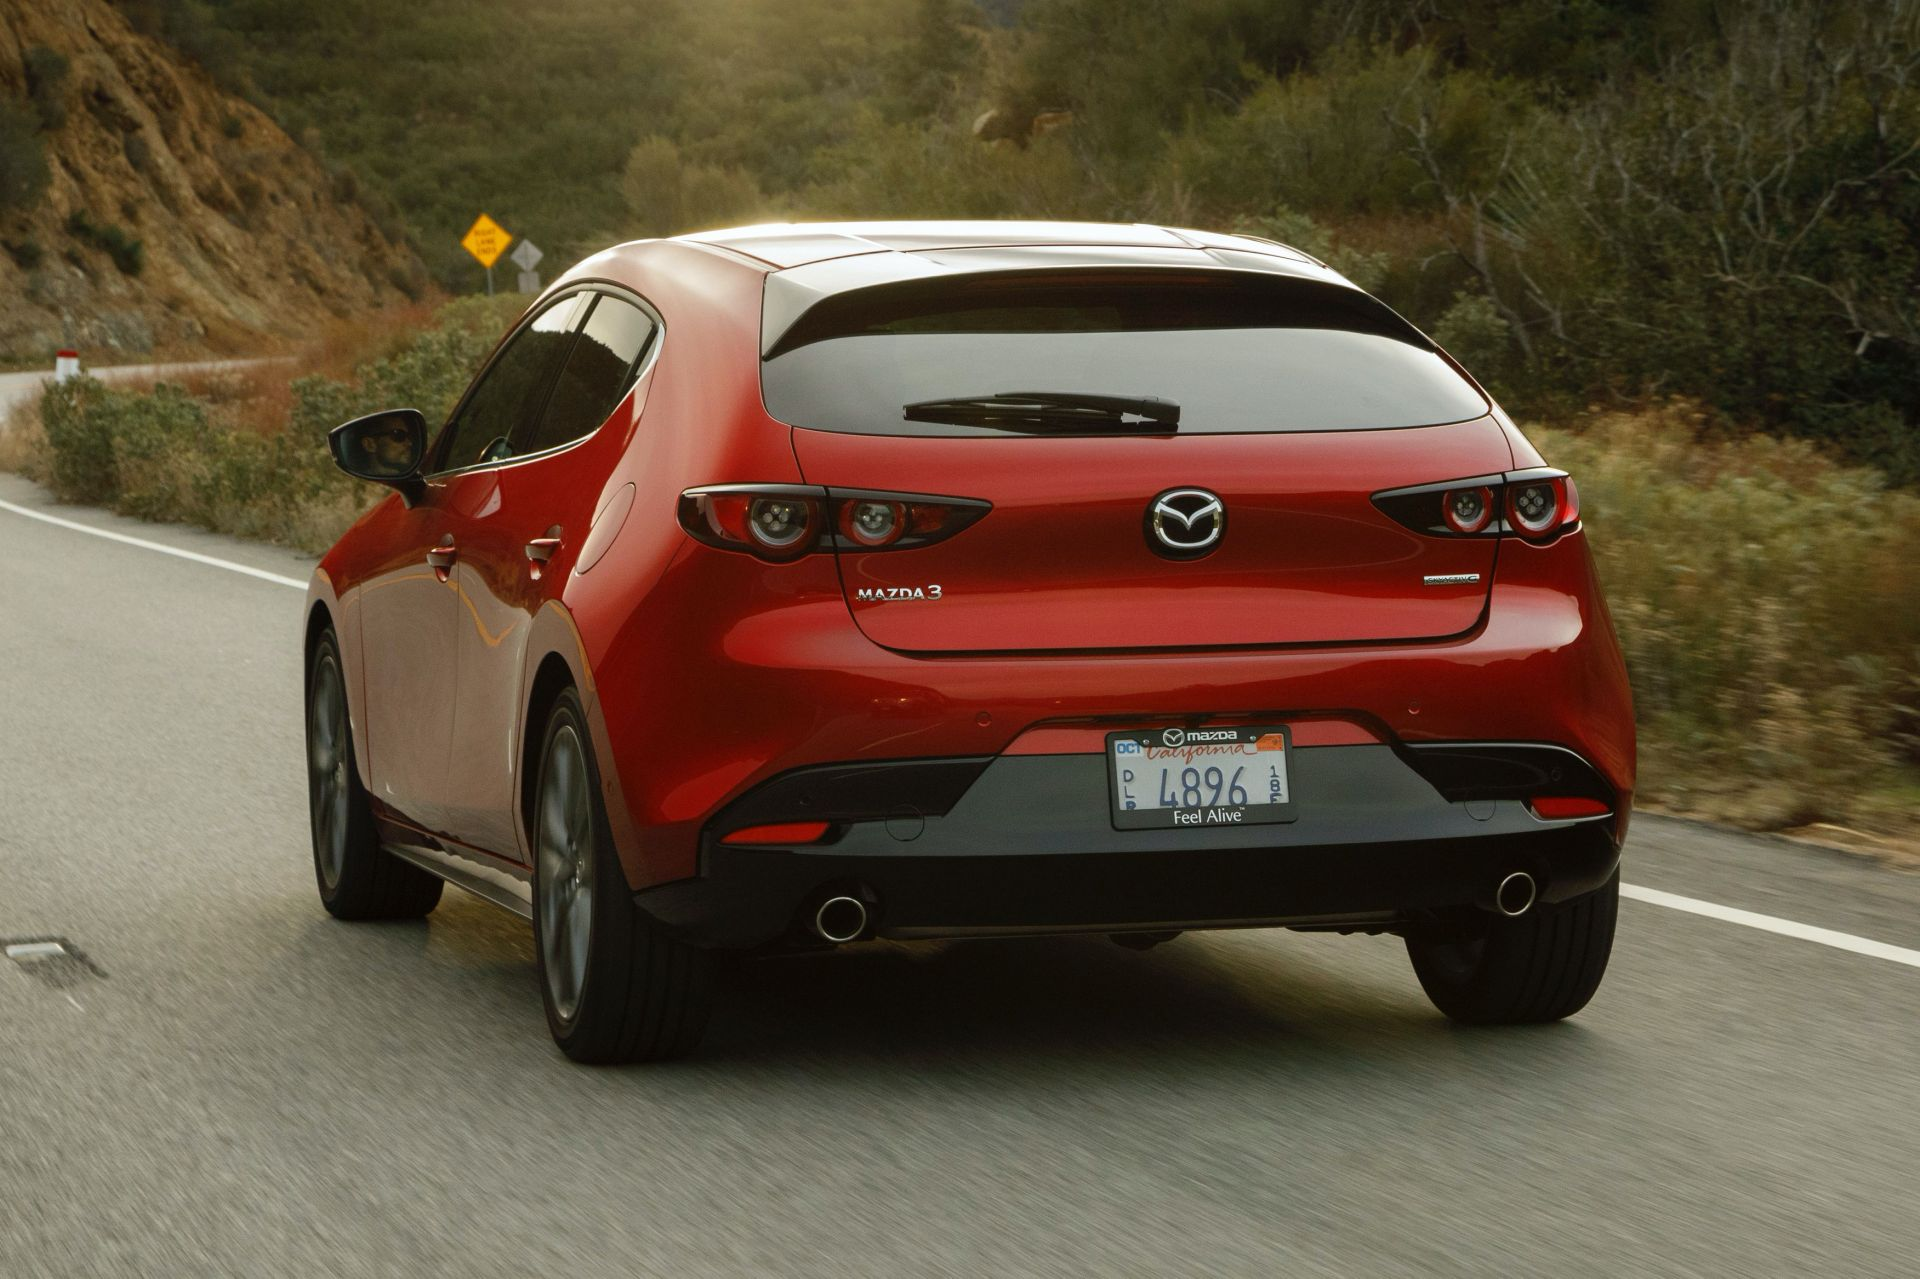 New 2021 Mazda 3 compact vehicle upgrades to three available engines